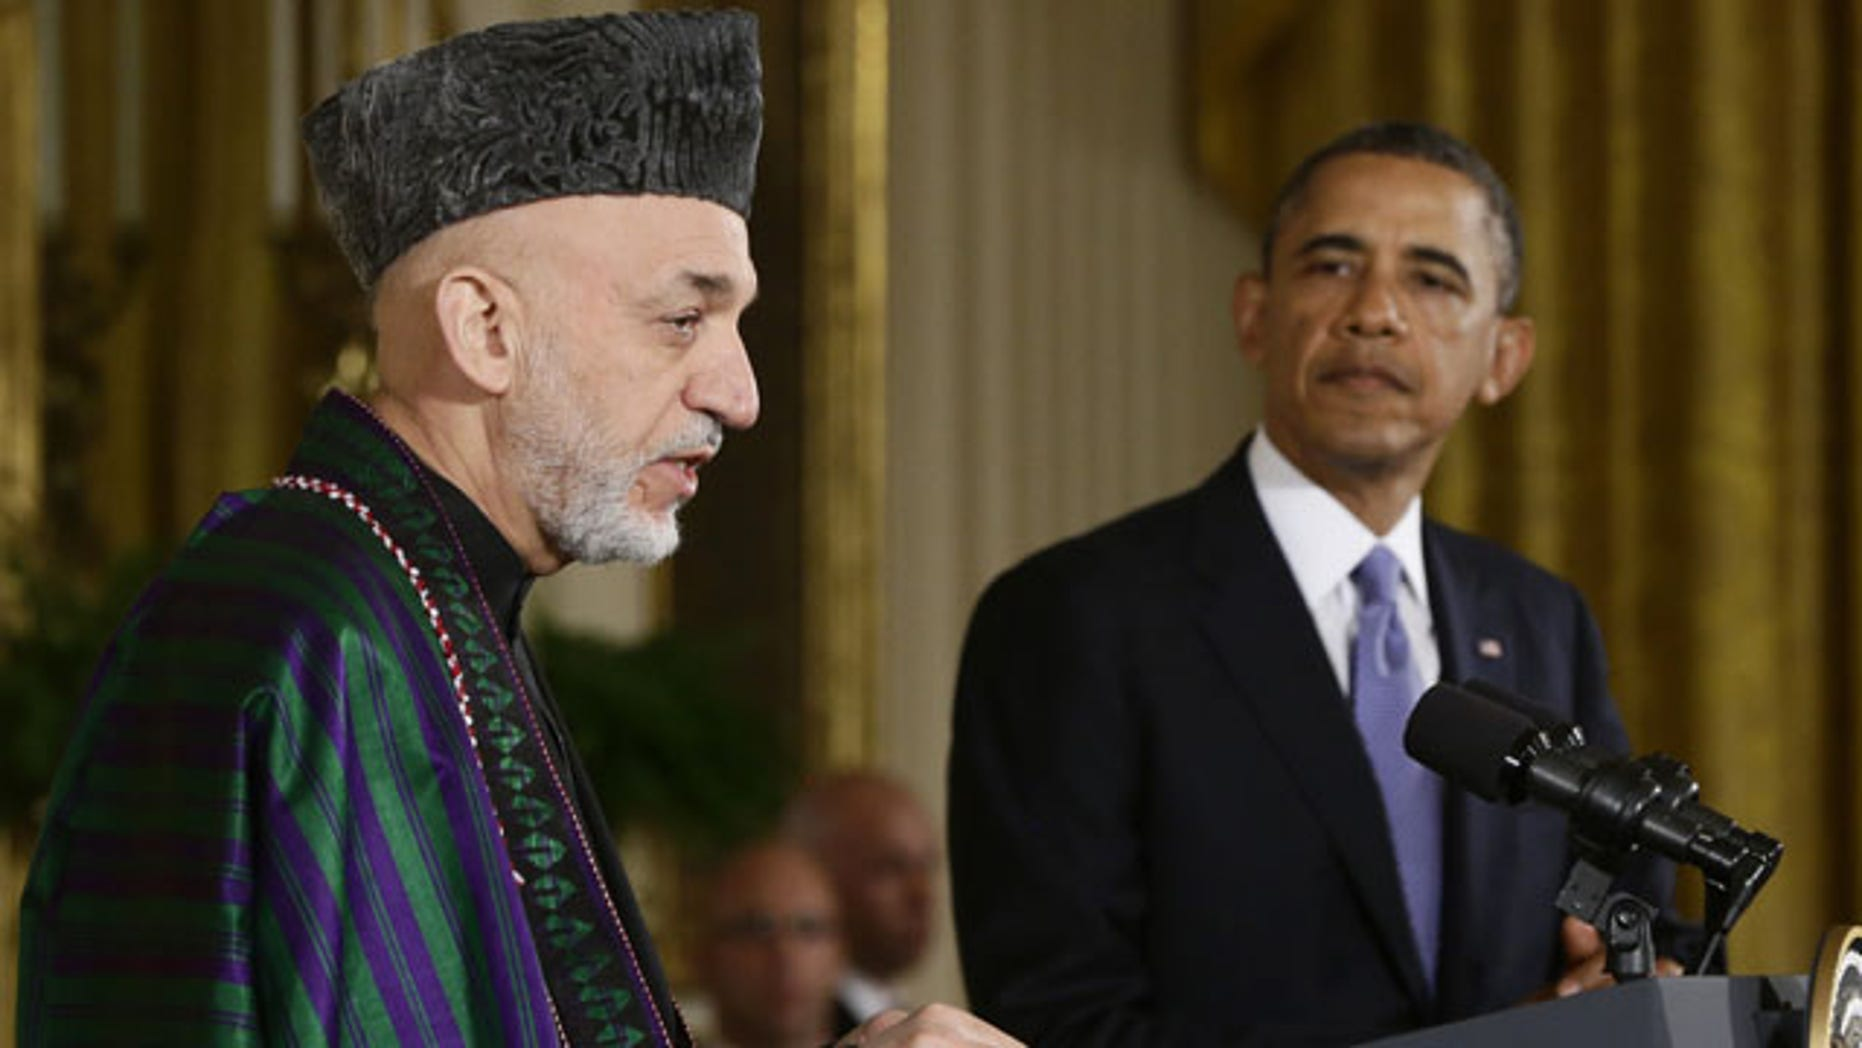 FILE - This Jan. 11, 2013 file photo shows President Barack Obama listening as Afghan President Hamid Karzai speaks during a news conference in the East Room at the White House in Washington. (AP)